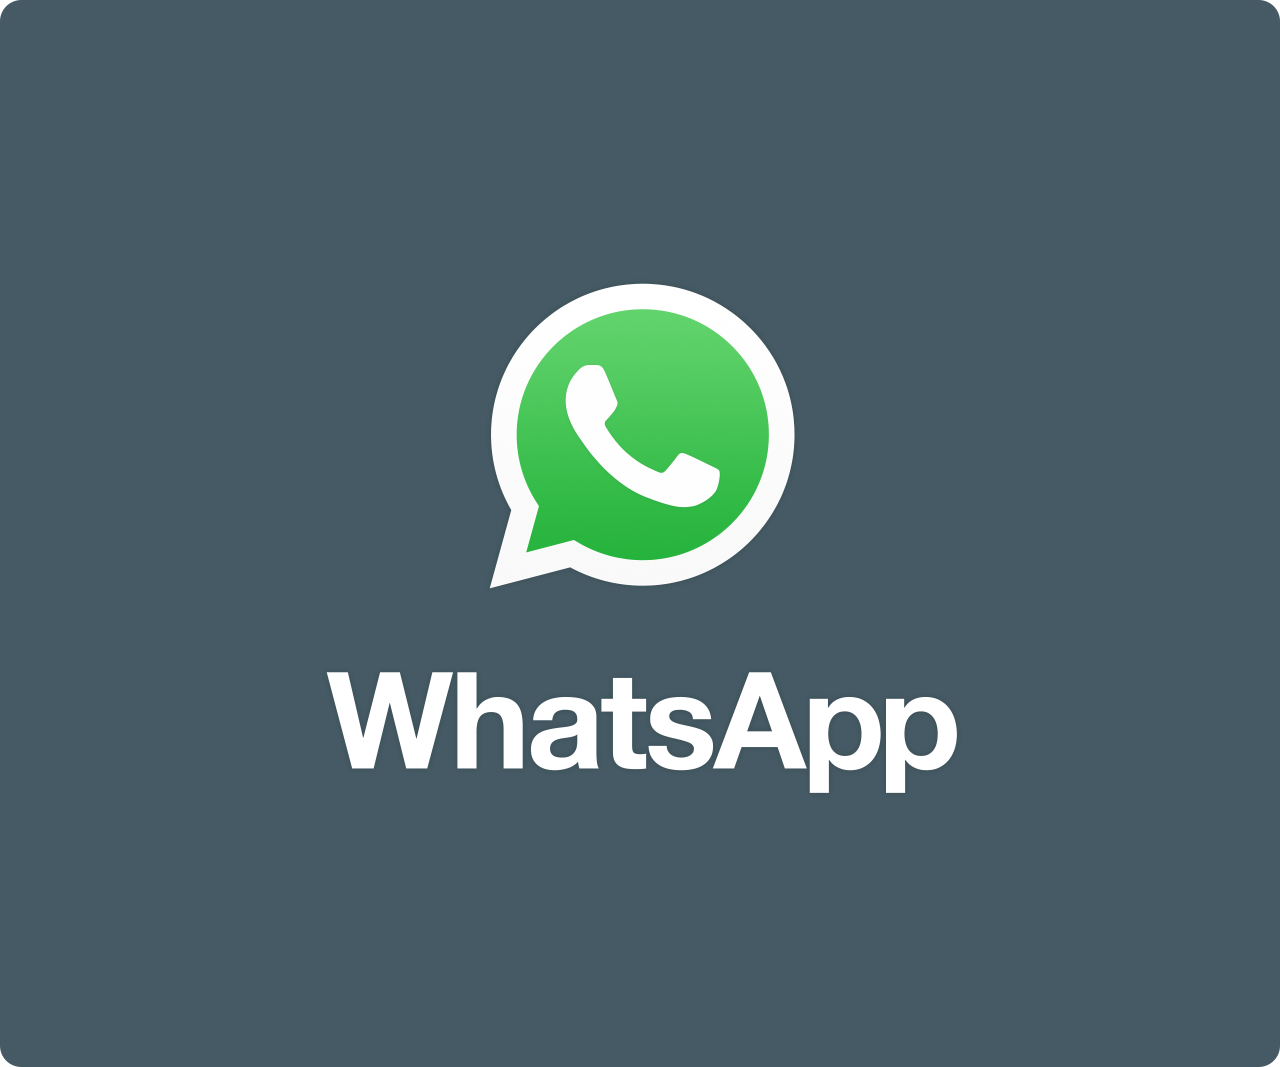 WhatsApp reaches 1 billion users